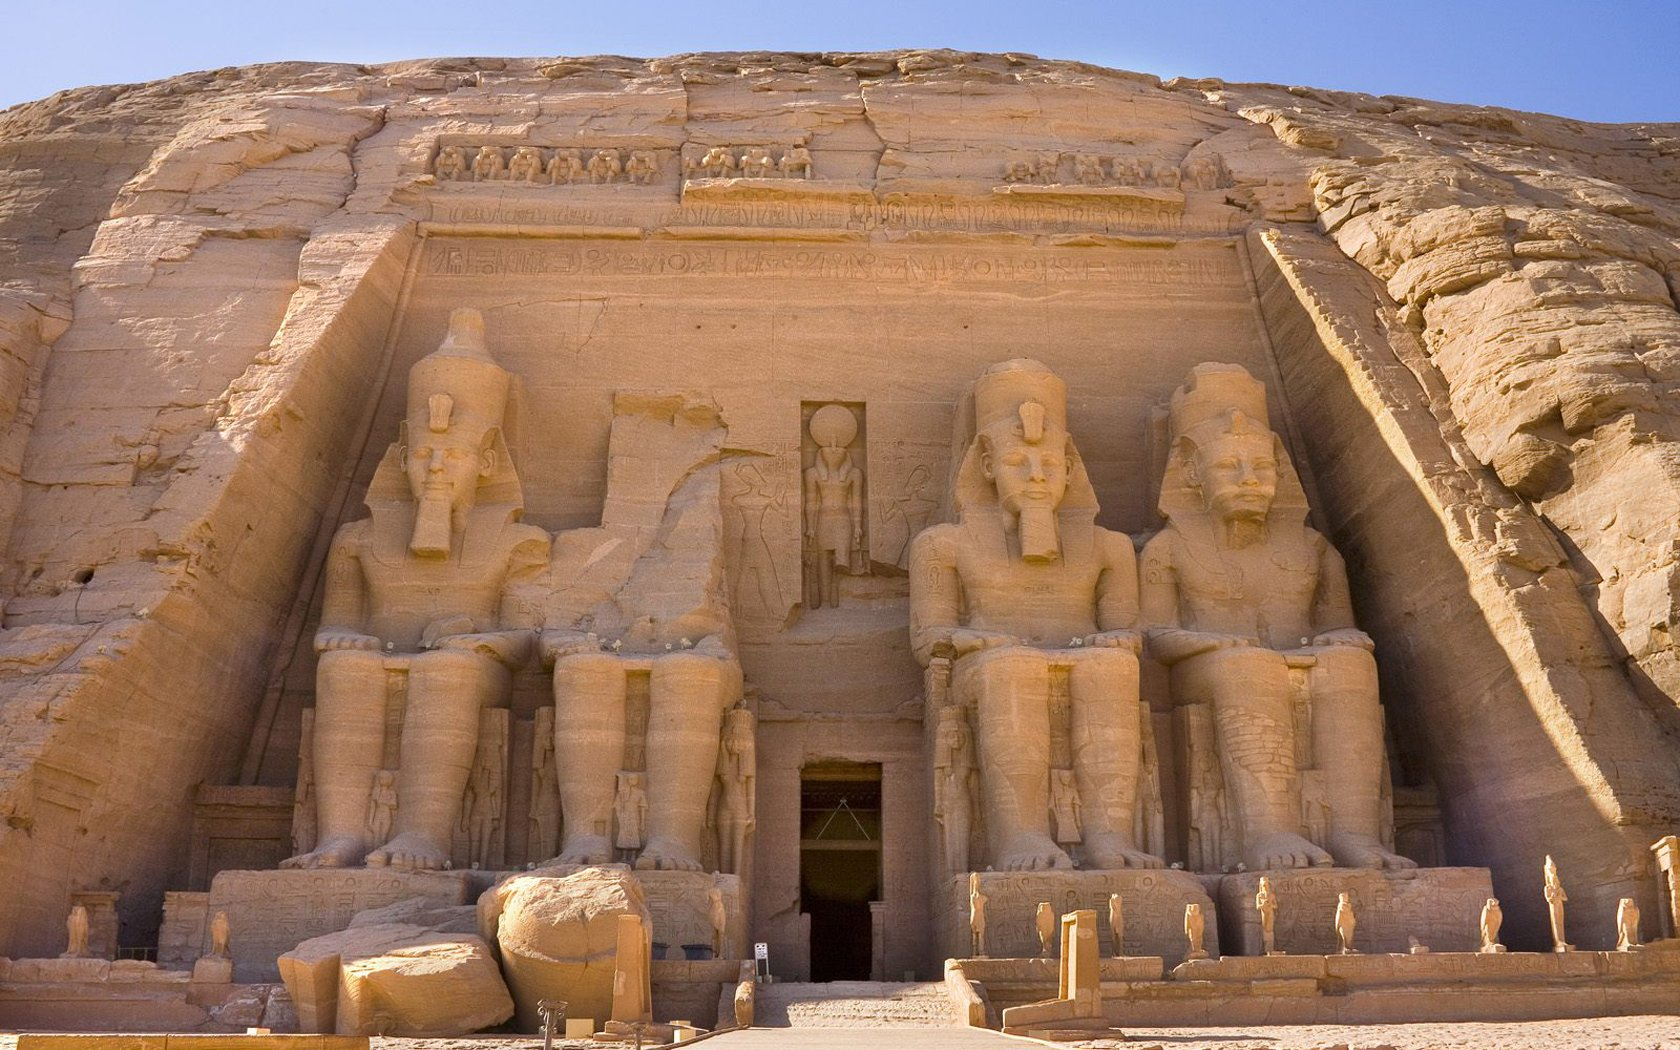 Giant sitting statues from Temple of Ramesses ii in Egypt